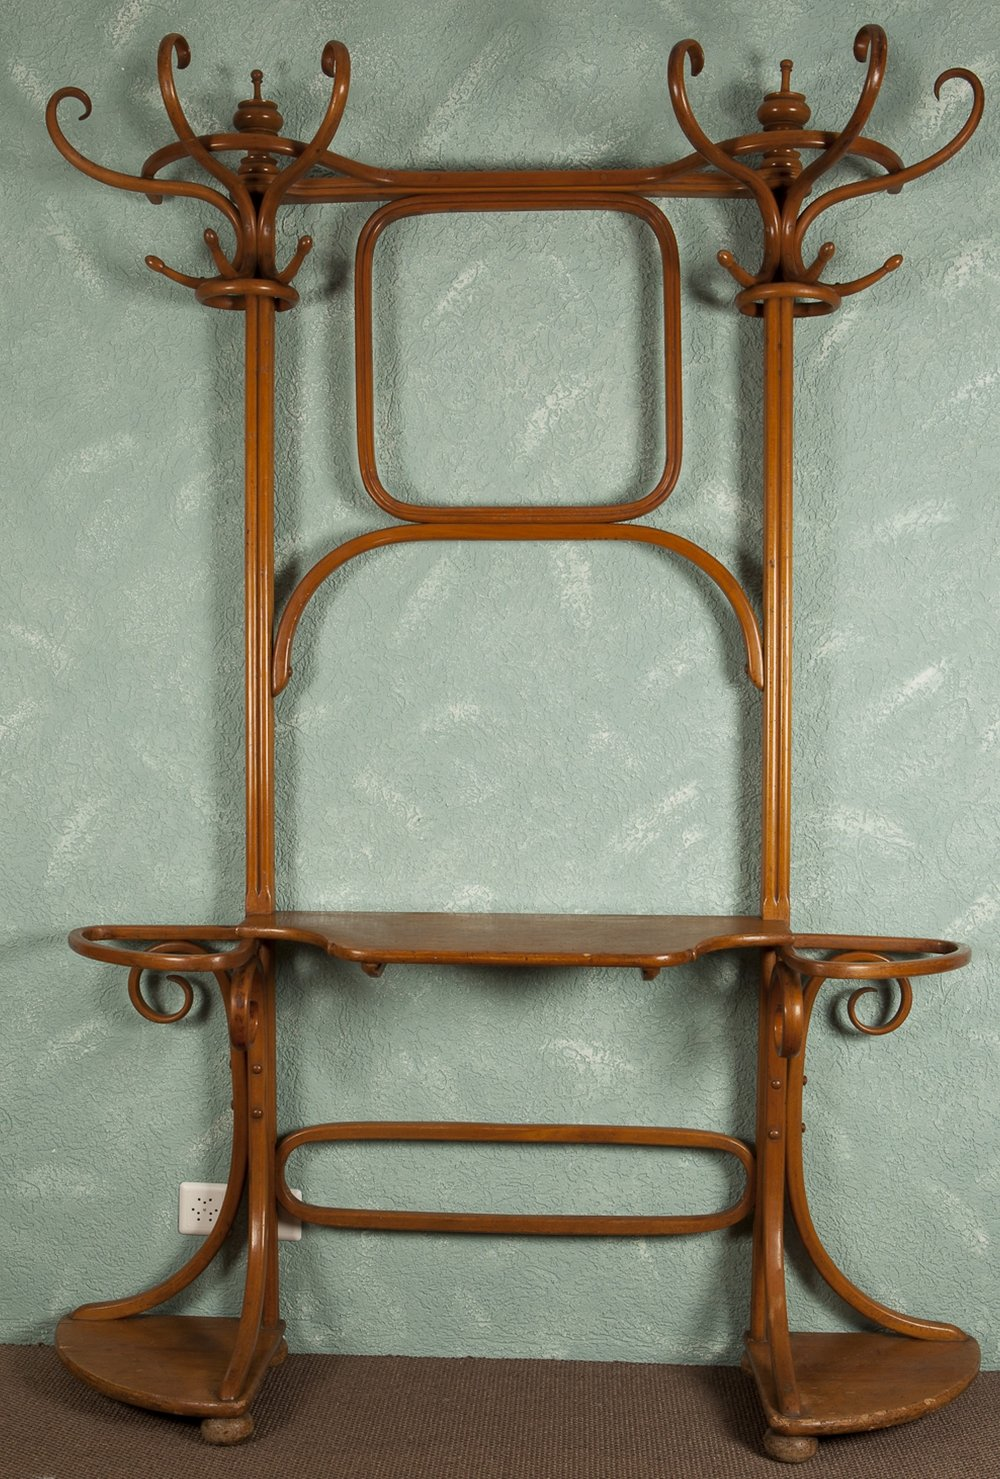 Thermo moulded wooden coat rack, 1920s